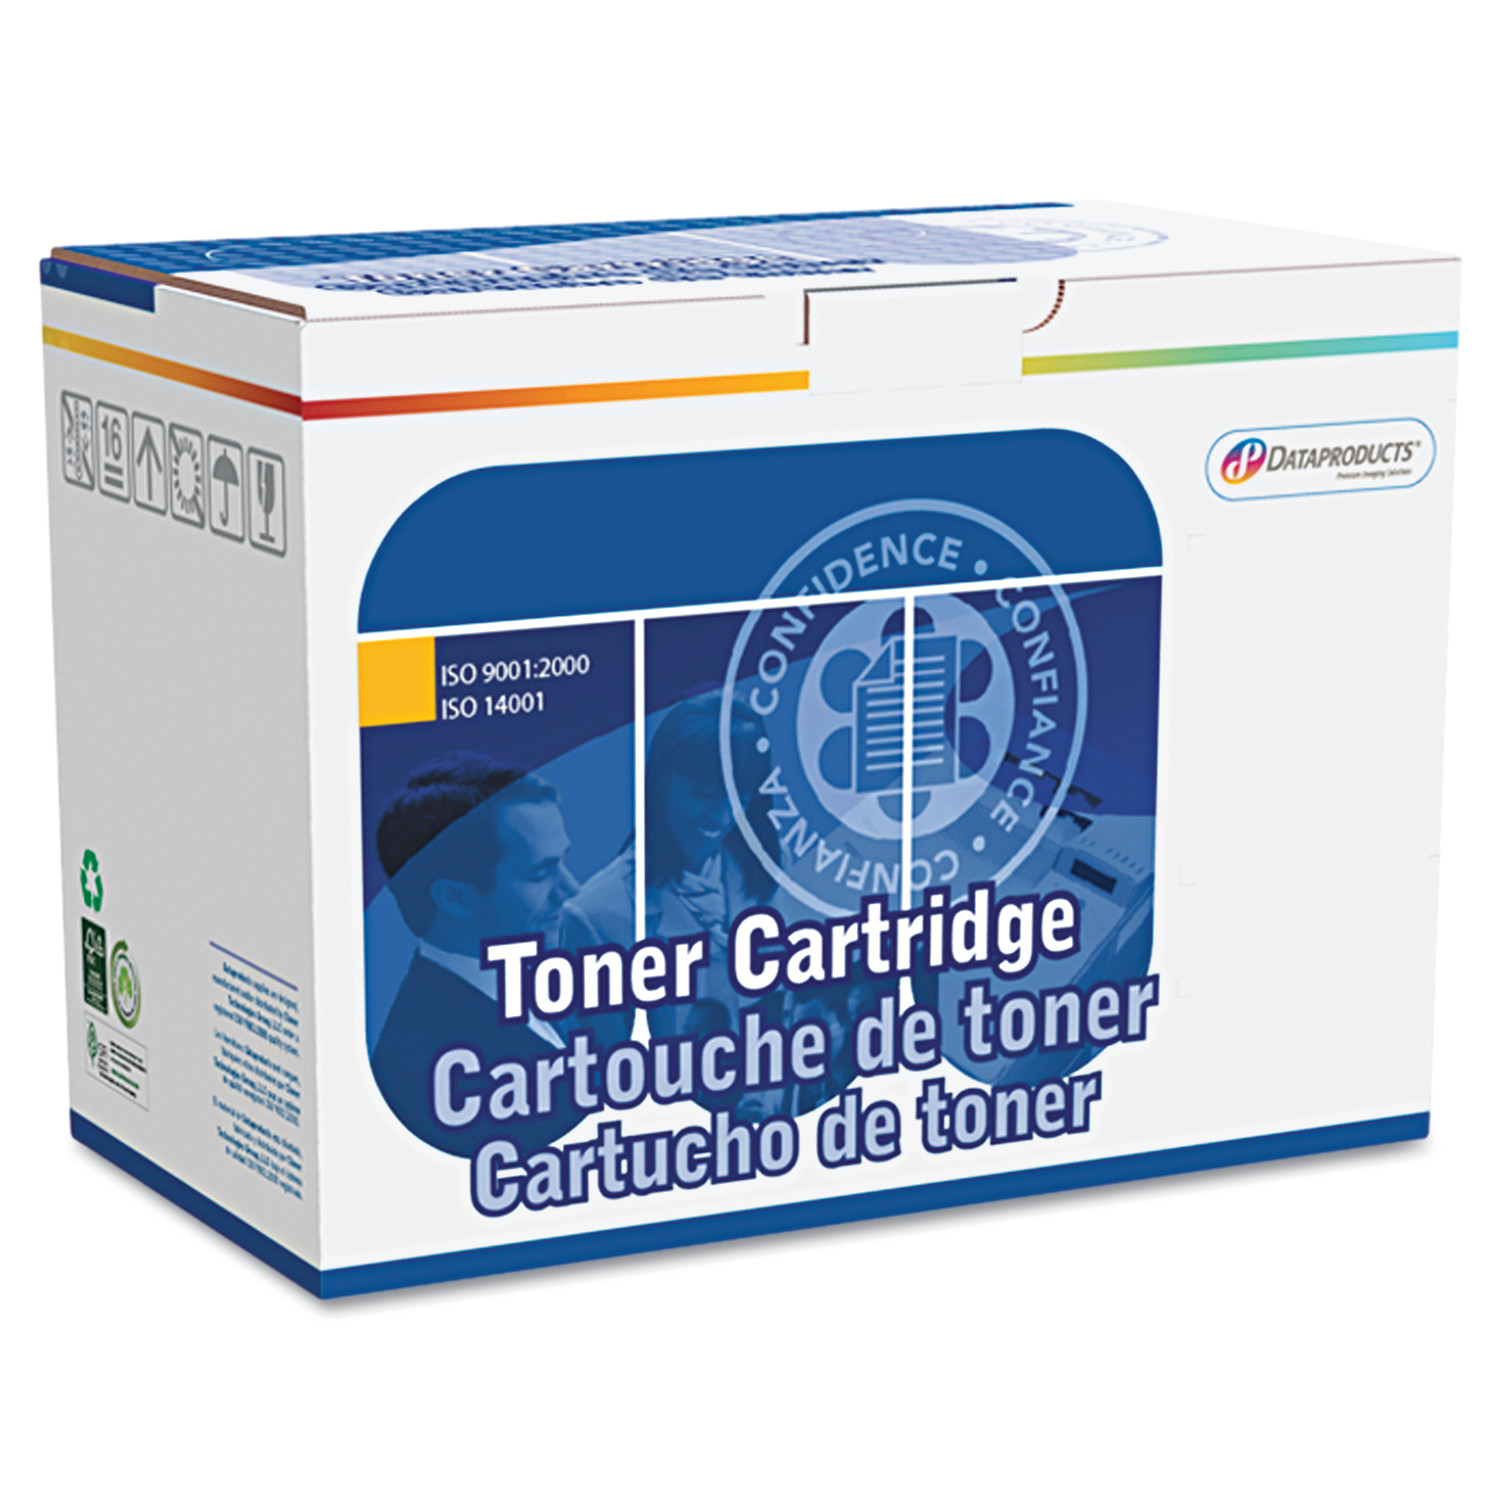 DataProducts Remanufactured CC533A (304A) Toner, 2,800 Pa...